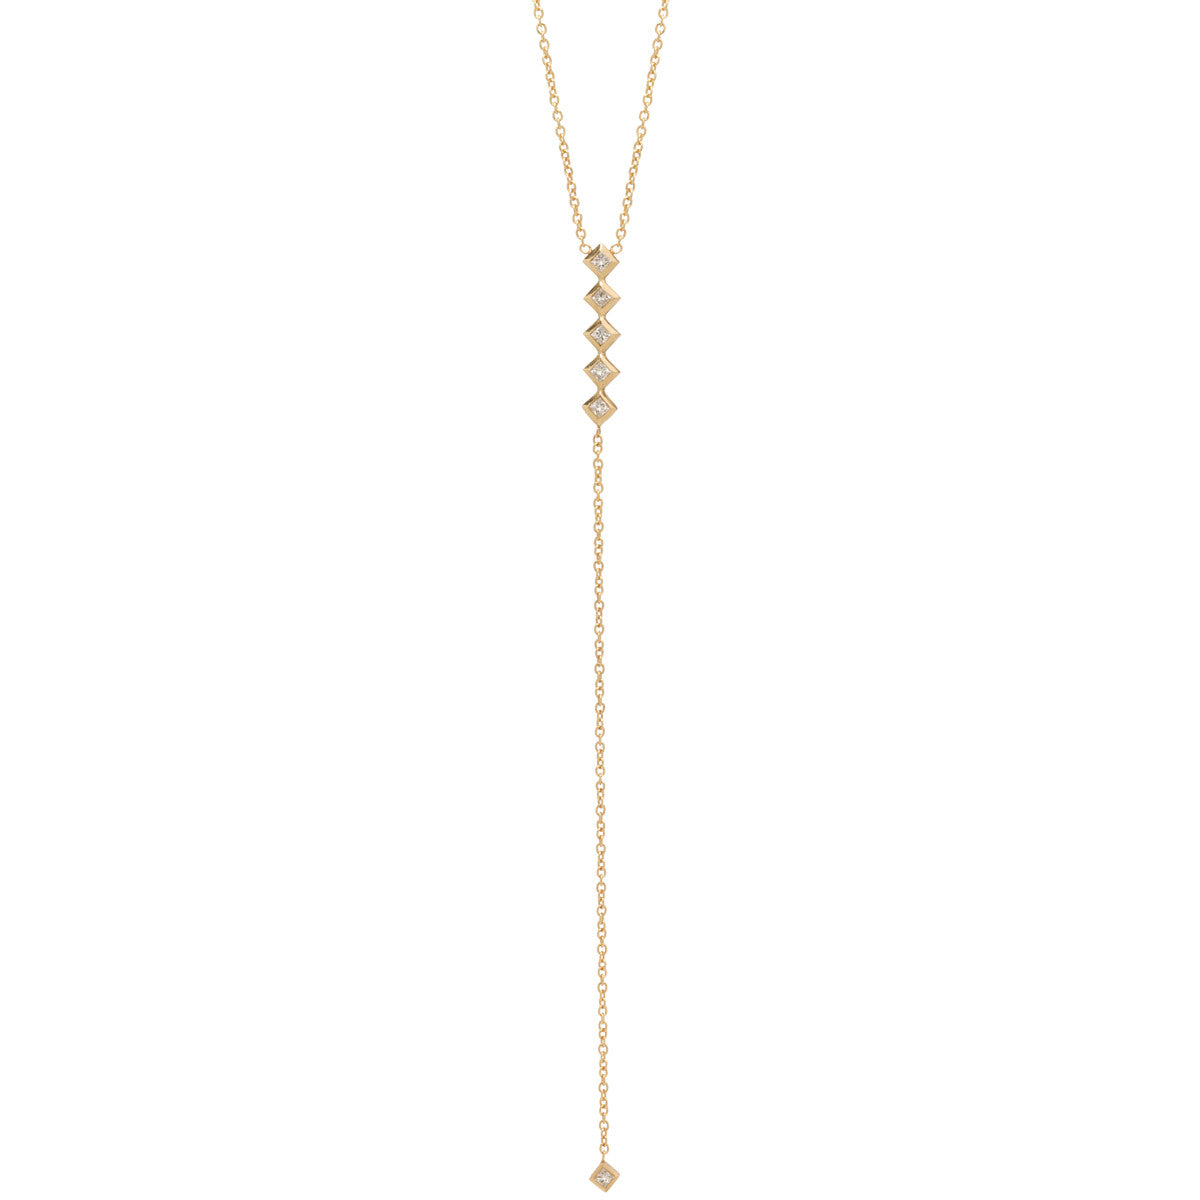 Zoë Chicco 14kt Yellow Gold 6 Princess Cut White Diamond Lariat Necklace